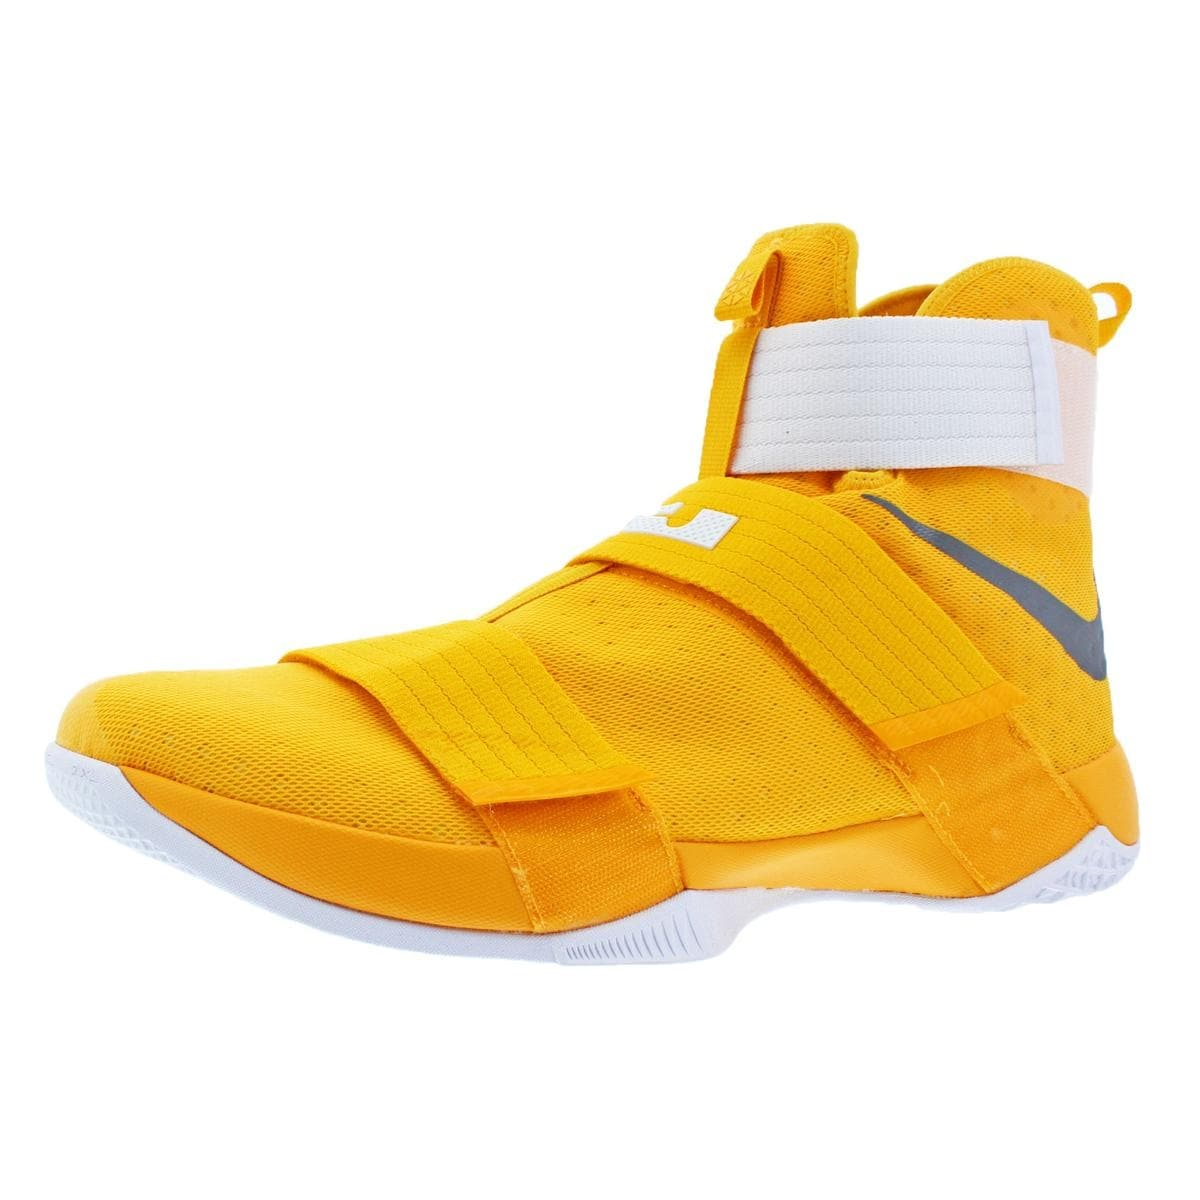 sports shoes e1675 8a730 Shop Nike LeBron Soldier 10 Men s Mesh High-Top Basketball Shoes Yellow  Size 18 - 18 medium (d) - Ships To Canada - Overstock - 22310867